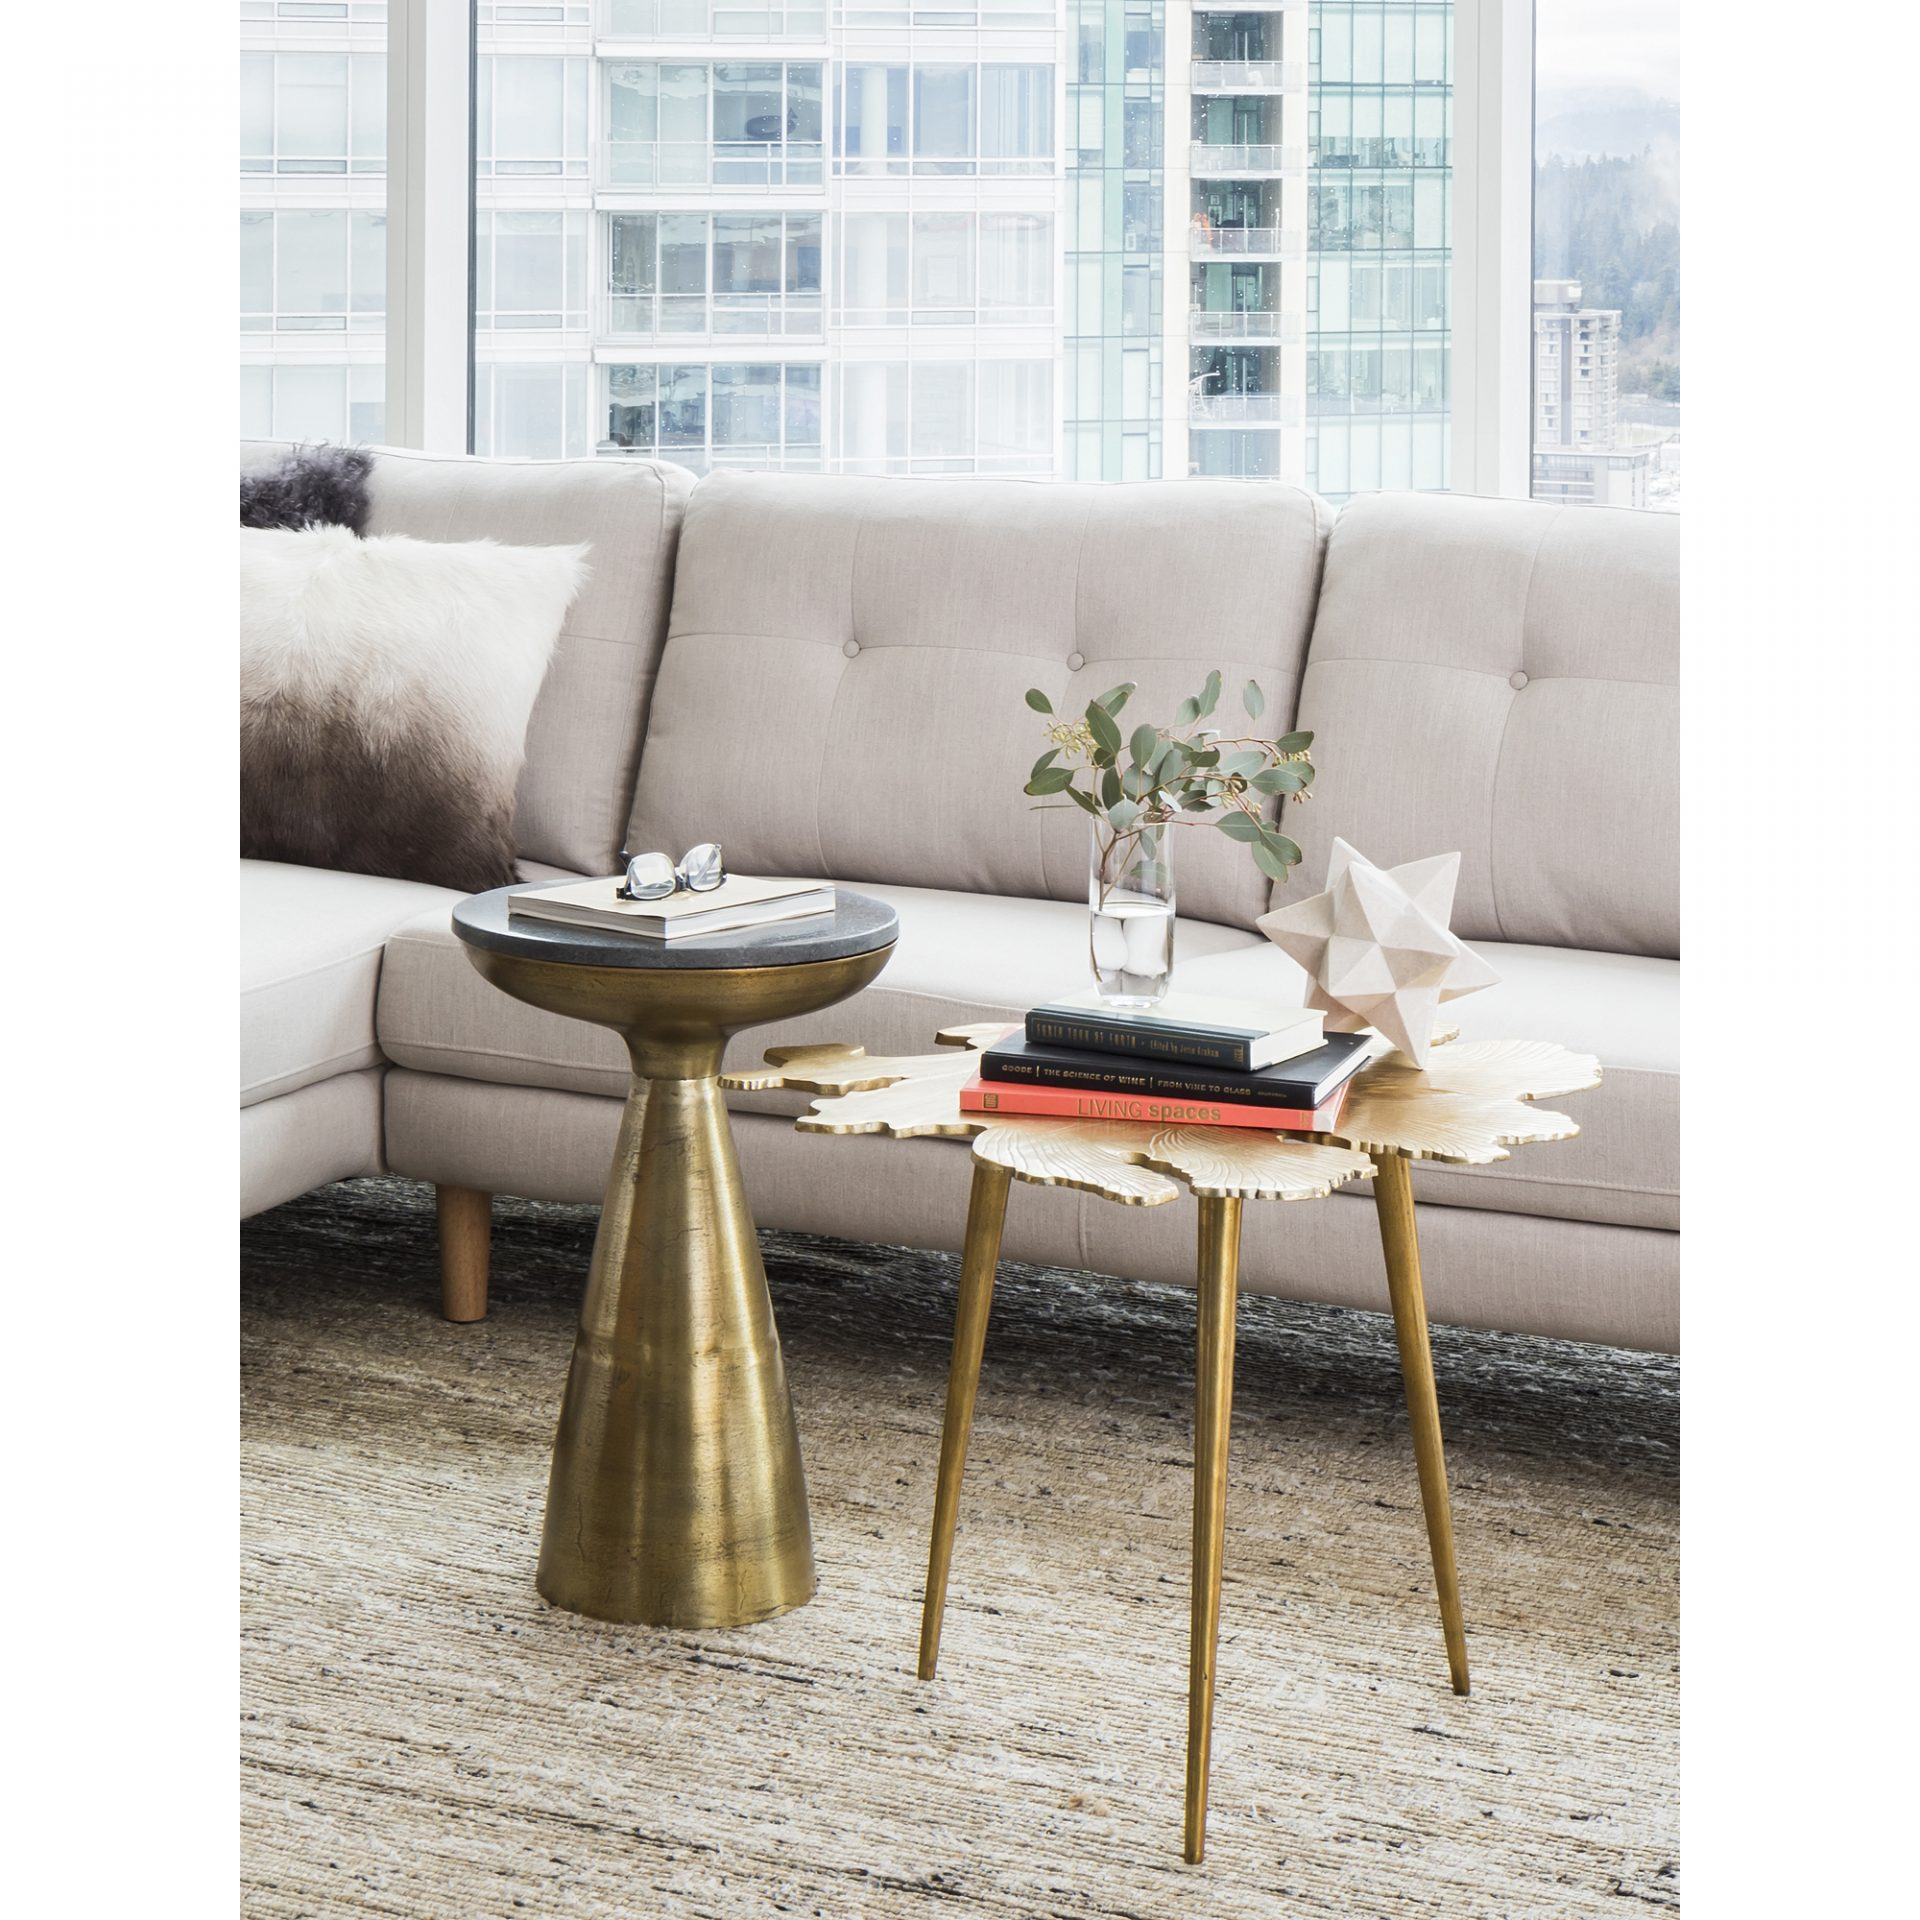 amoeba side table gold products moe whole tall accent tables corner dining set furniture cream colored tablecloth small half moon hall nic umbrella utility sink bar height legs